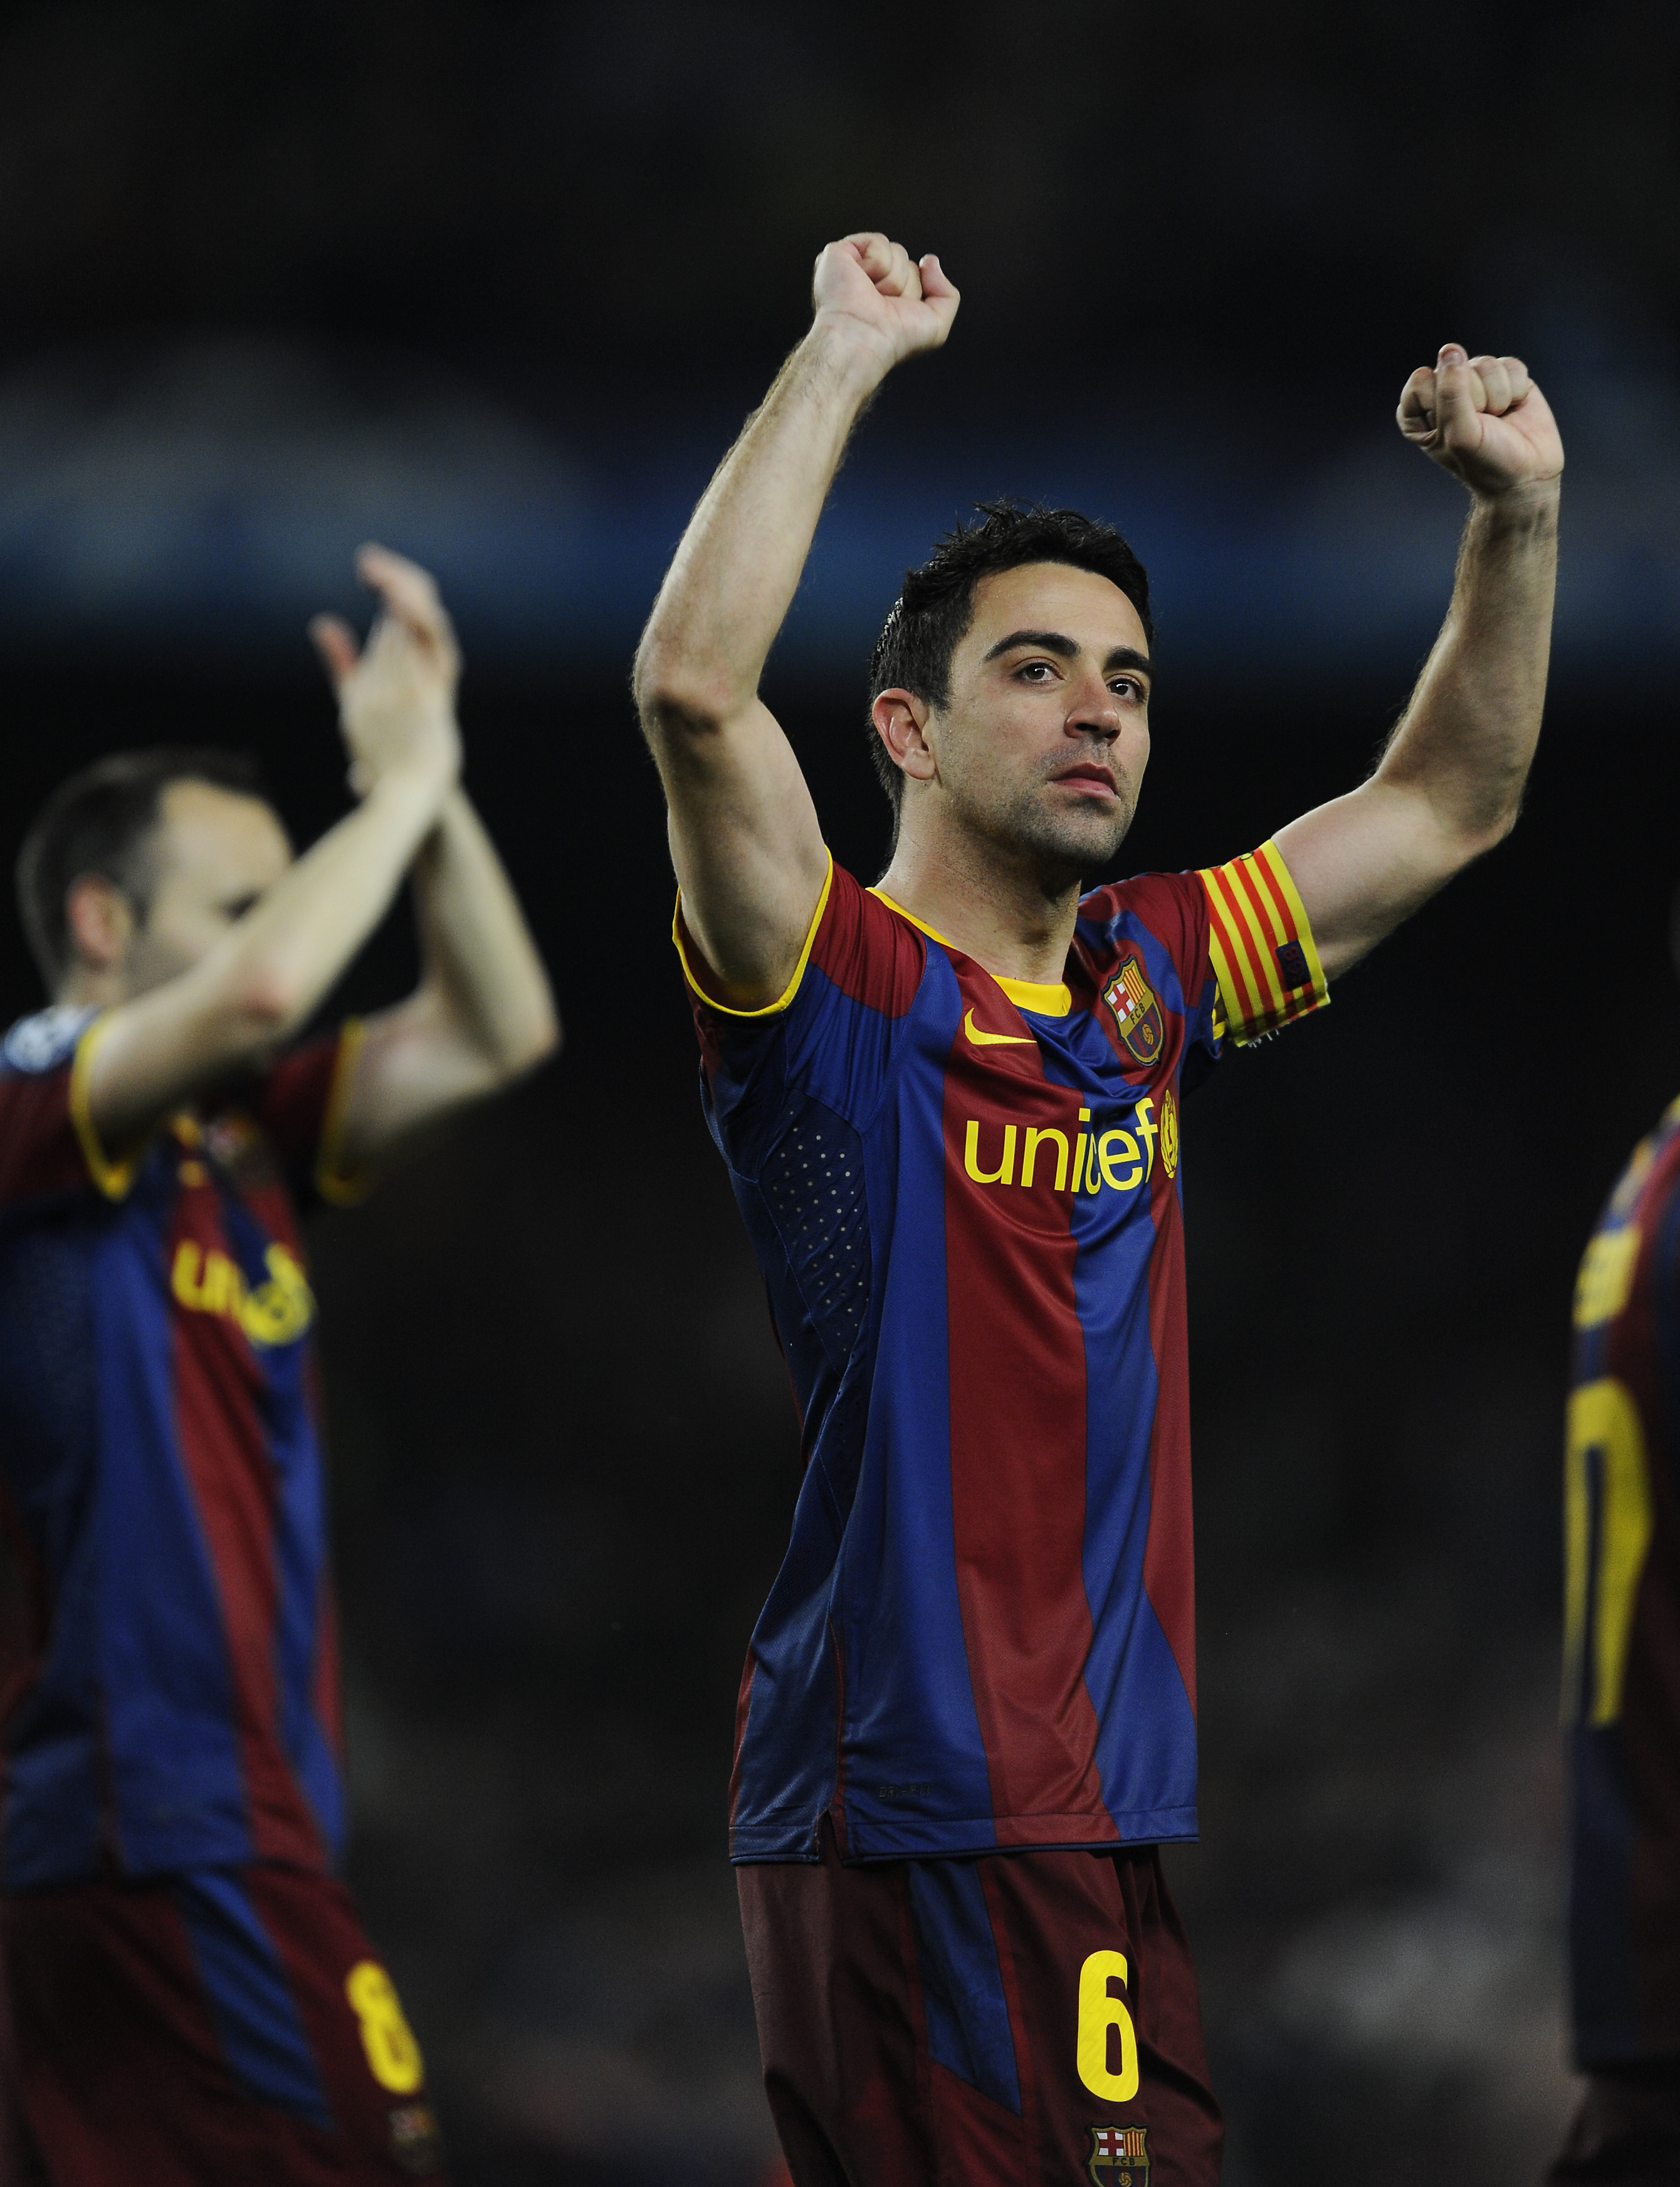 BARCELONA, SPAIN - MAY 03:  Xavi Hernandez of FC Barcelona celebrates after defeating Real Madrid at the end of the UEFA Champions League Semi Final second leg match between Barcelona and Real Madrid, at the Camp Nou on May 3, 2011 in Barcelona, Spain.  (